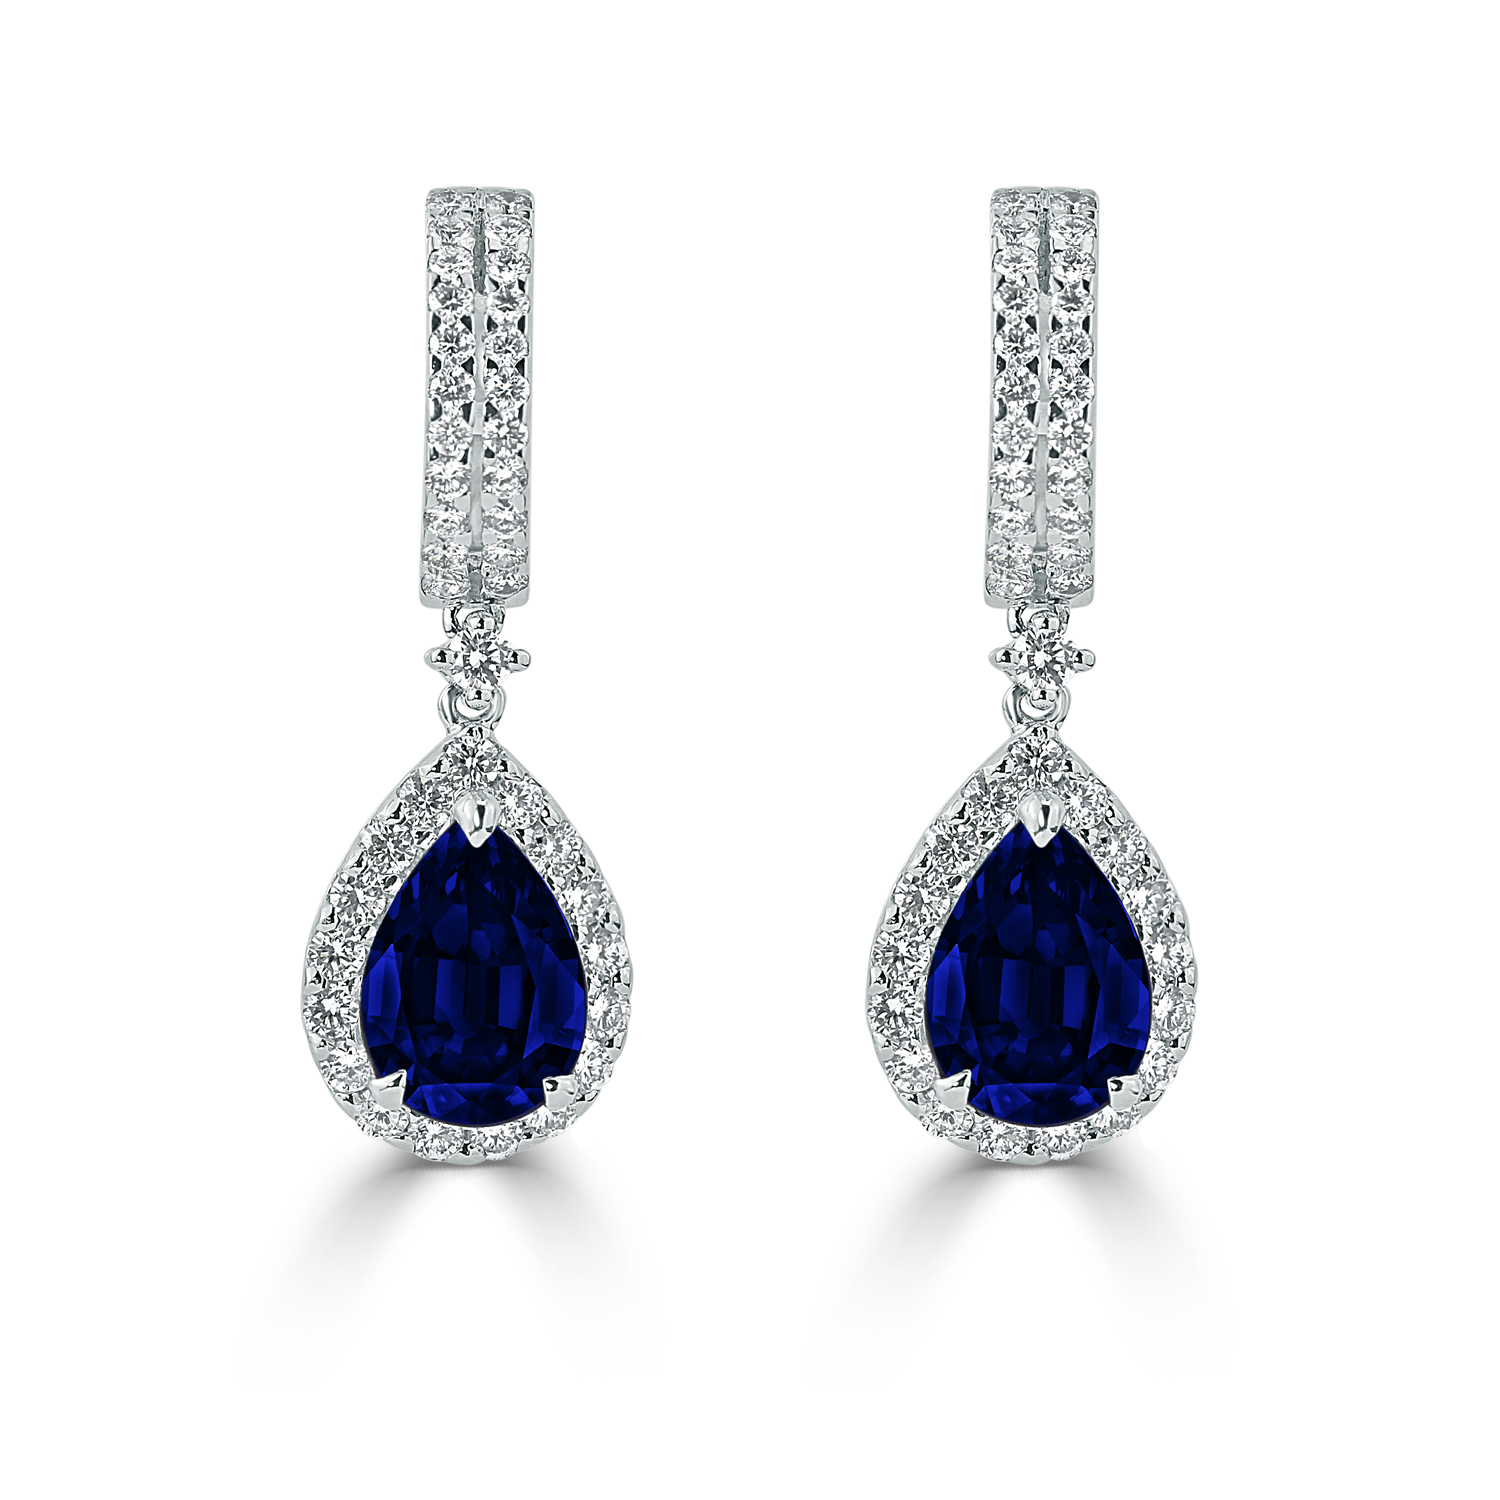 18K White Gold Halo Diamond Drop Earrings with 3 9/10 cttw Pear Blue Sapphire and 1 1/8 cttw Diamonds IGI Certified